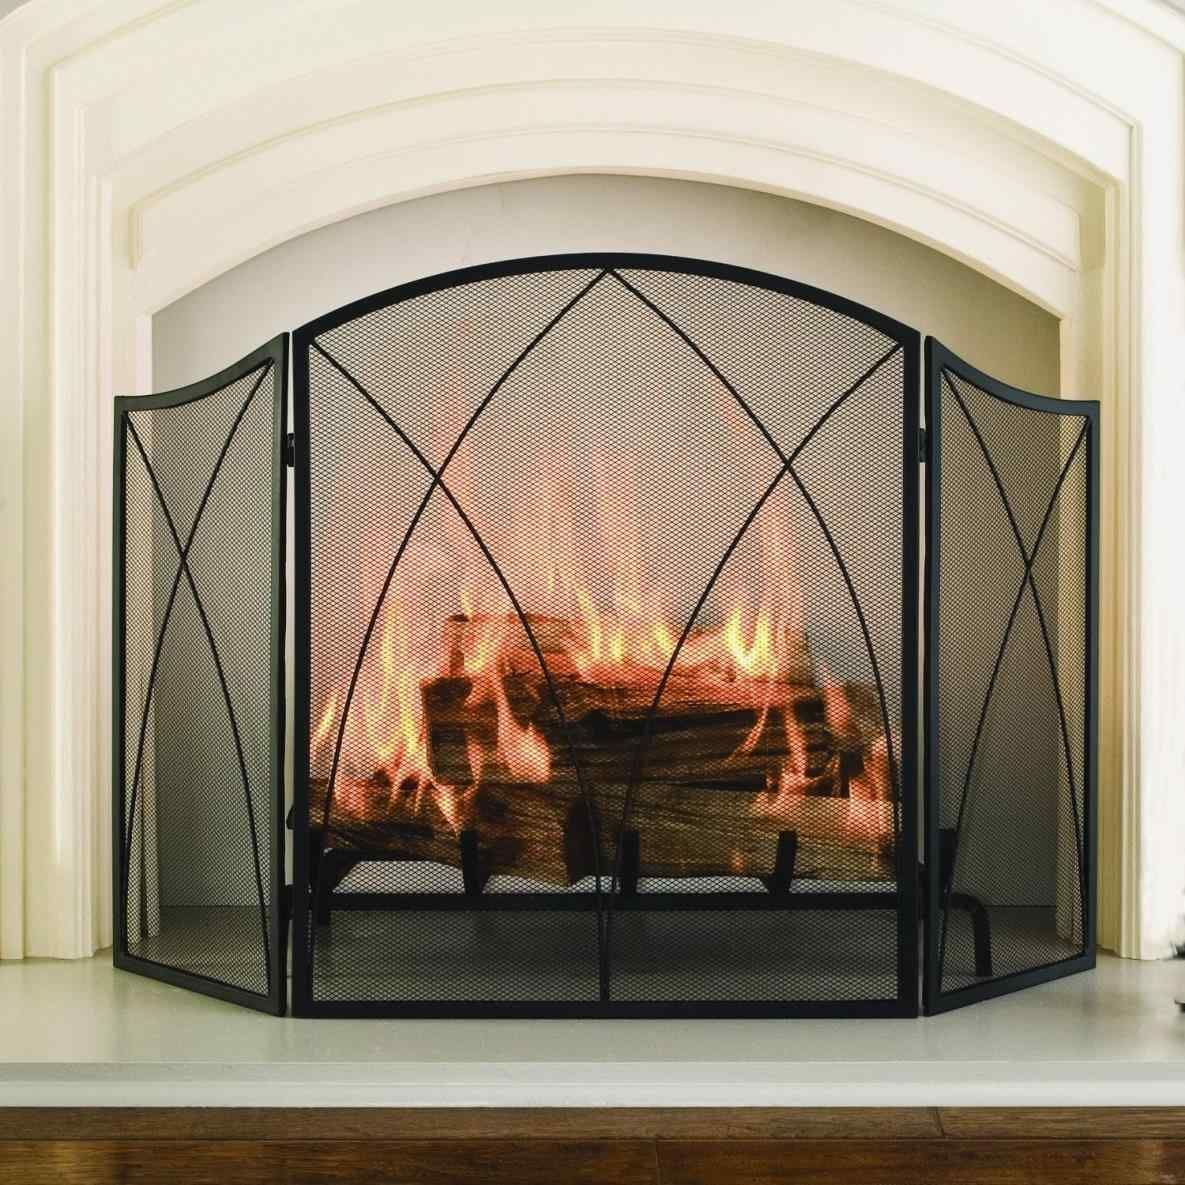 Best Fireplace tools Lovely 11 Best Fancy Fireplace Screens Design and Decor Ideas